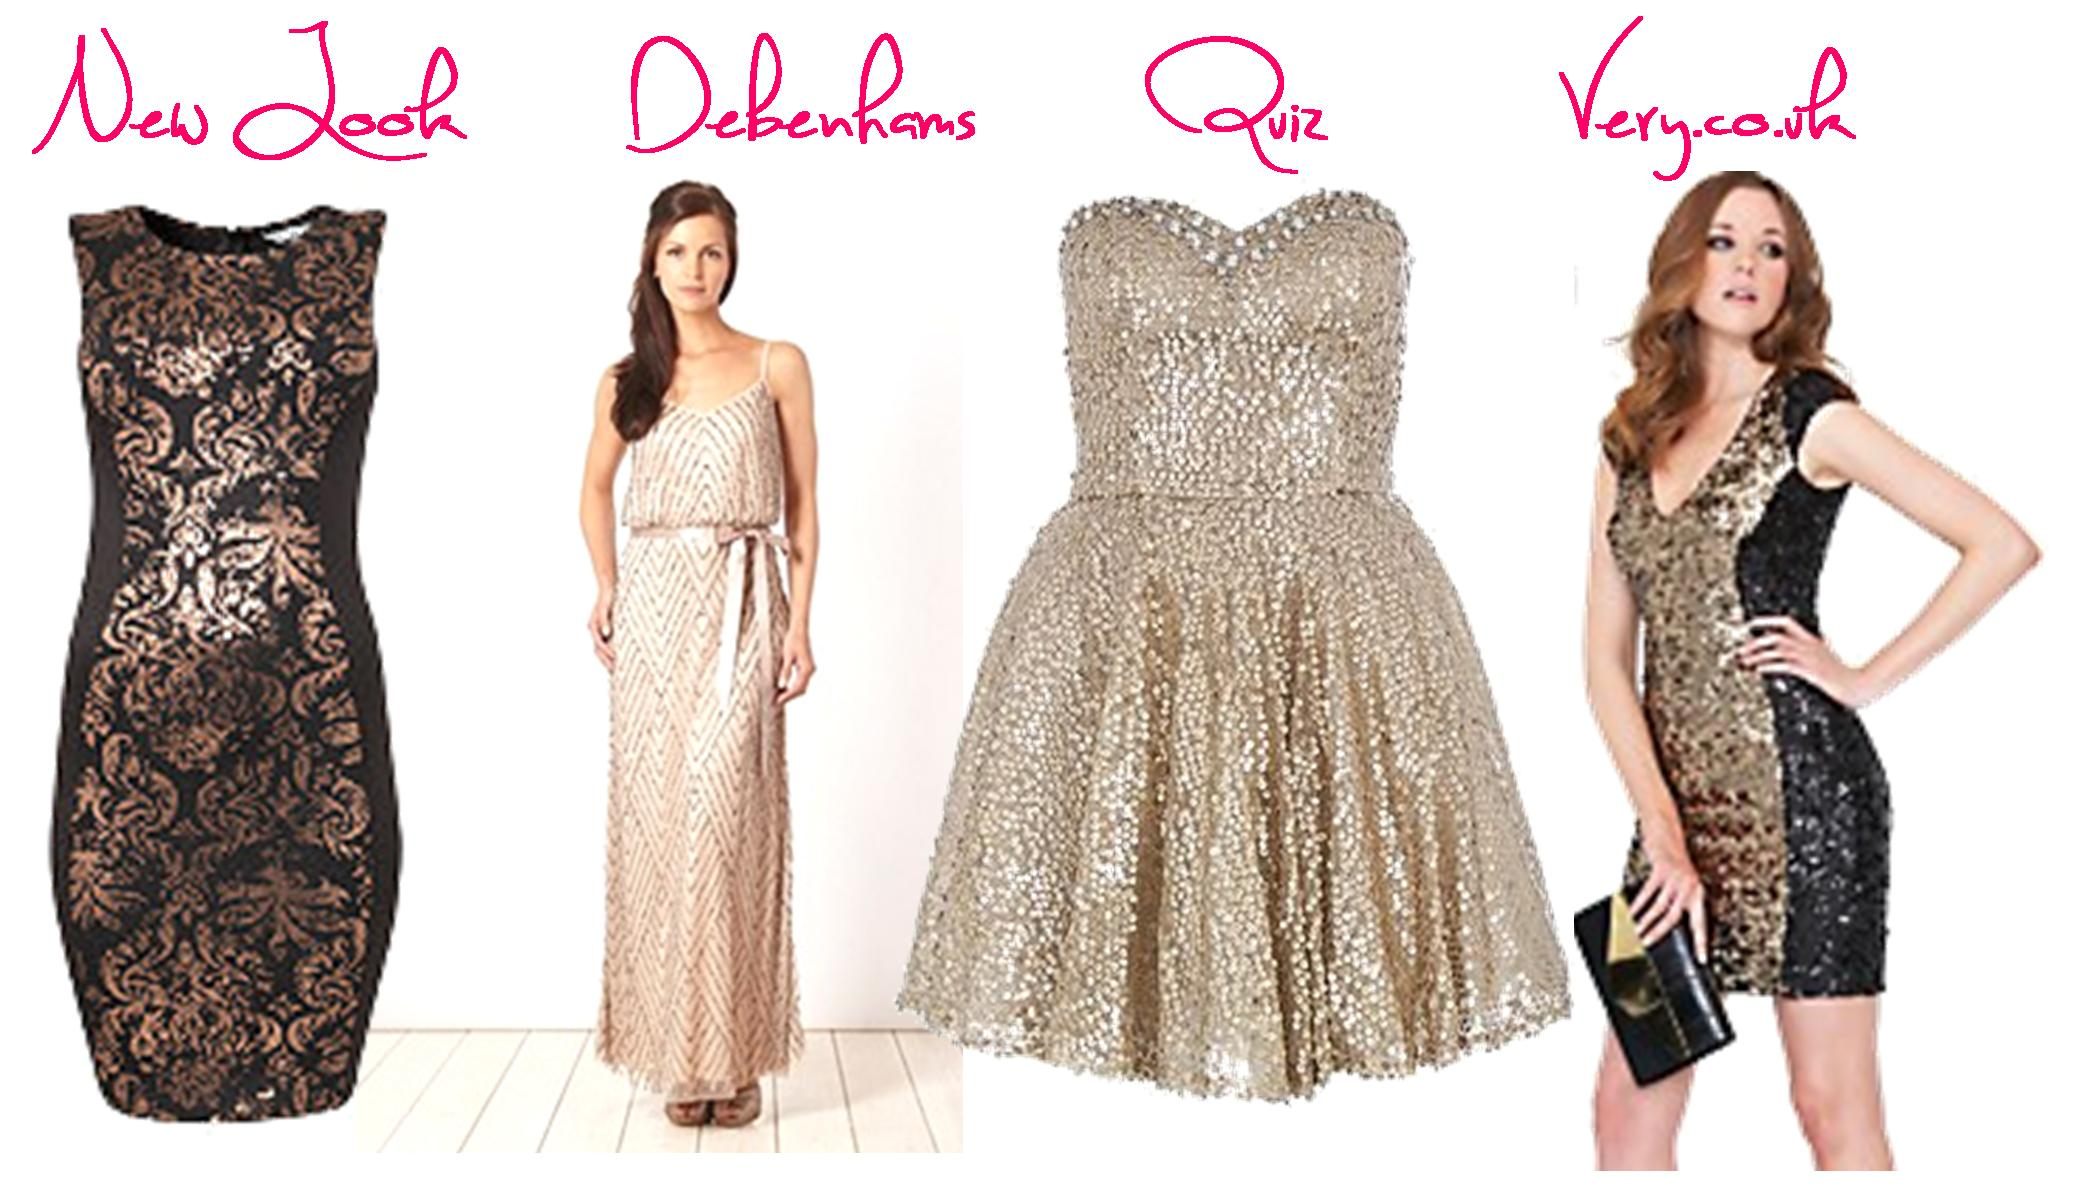 0b09974f6049 christmas dresses silver gold black sequin fashion party outfits very  debenhams quiz new look